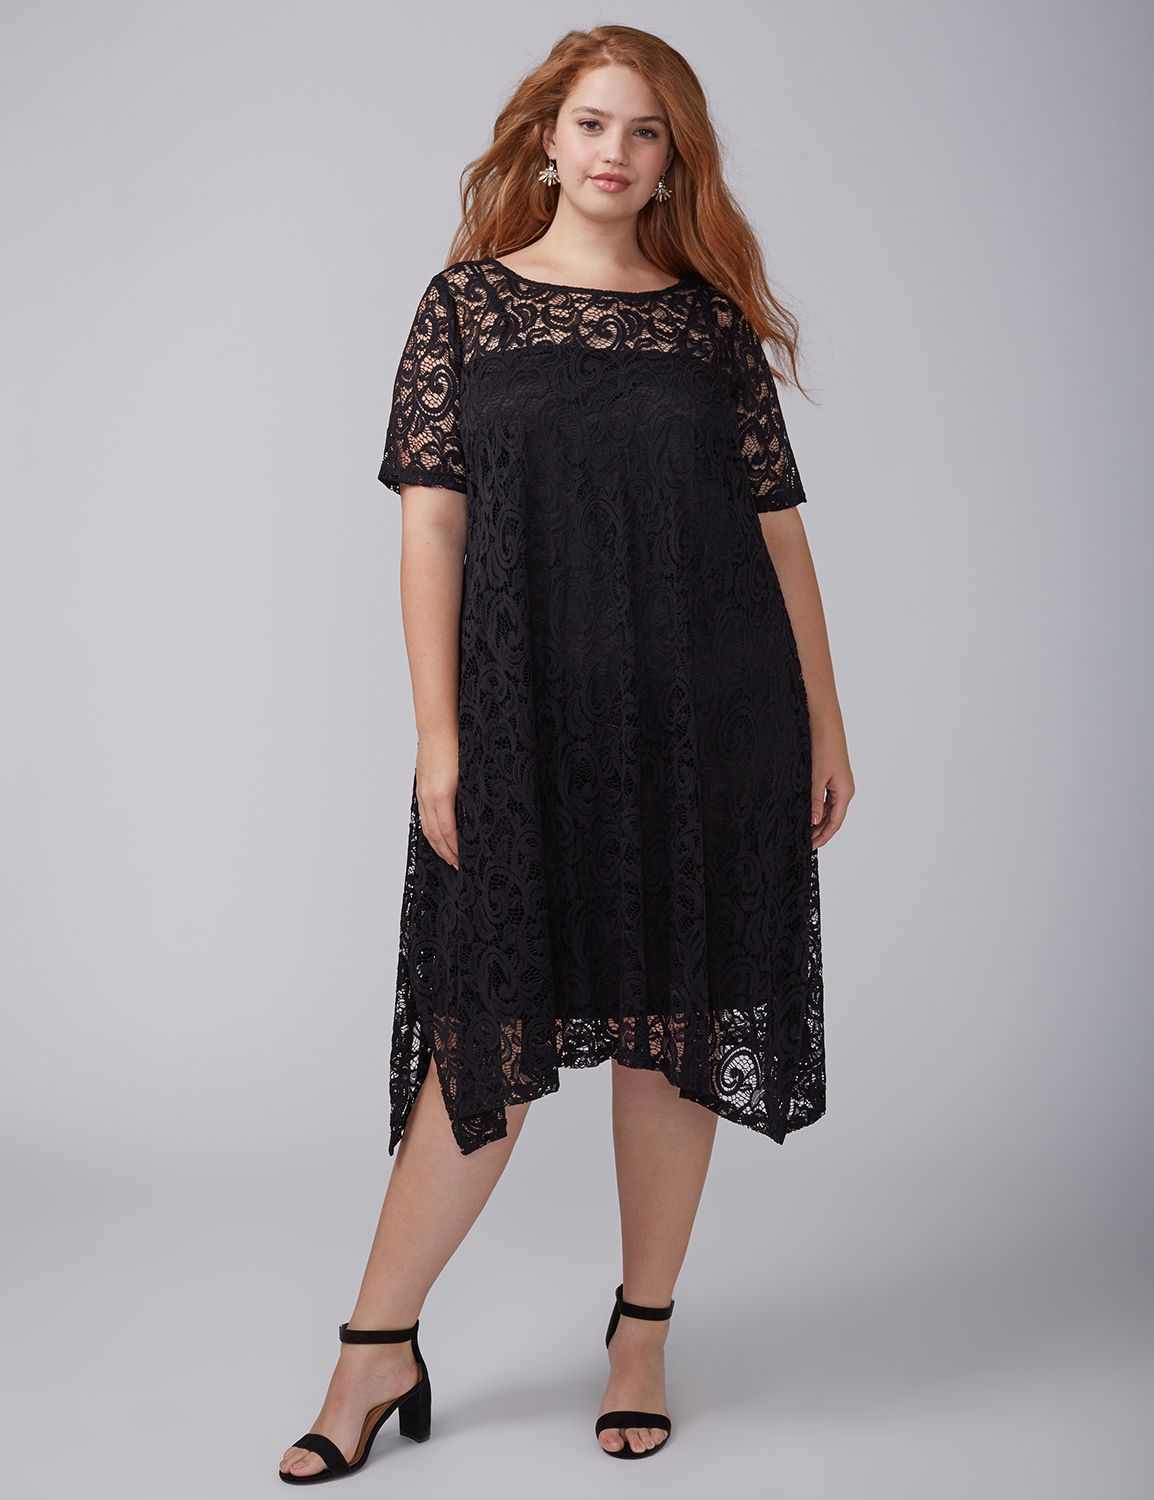 Plus Size Dresses | Fit and Flare, T-Shirt & Party Dresses | Lane ...